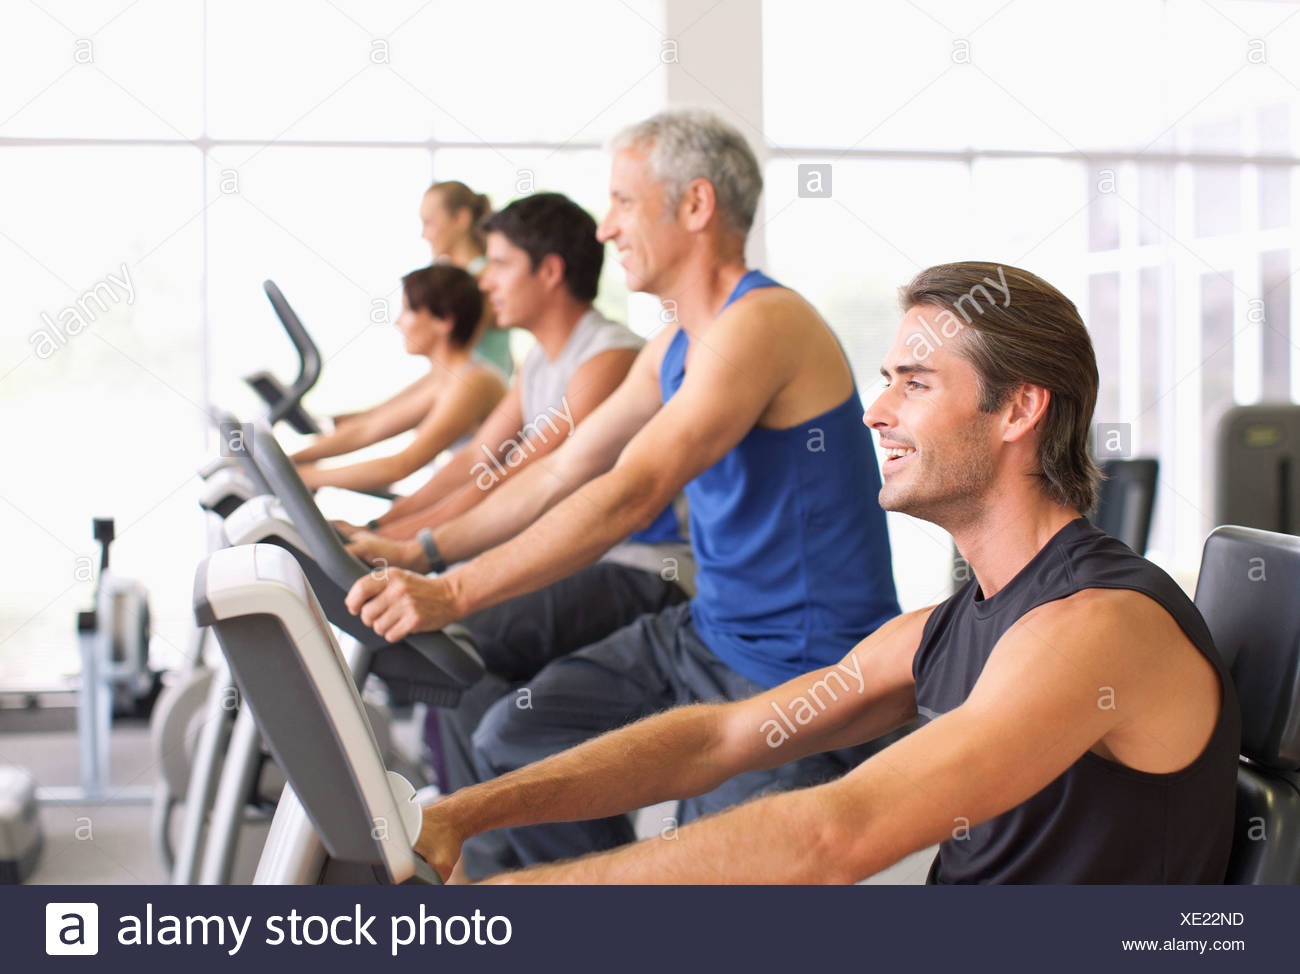 People working out on exercise machines in gymnasium - Stock Image